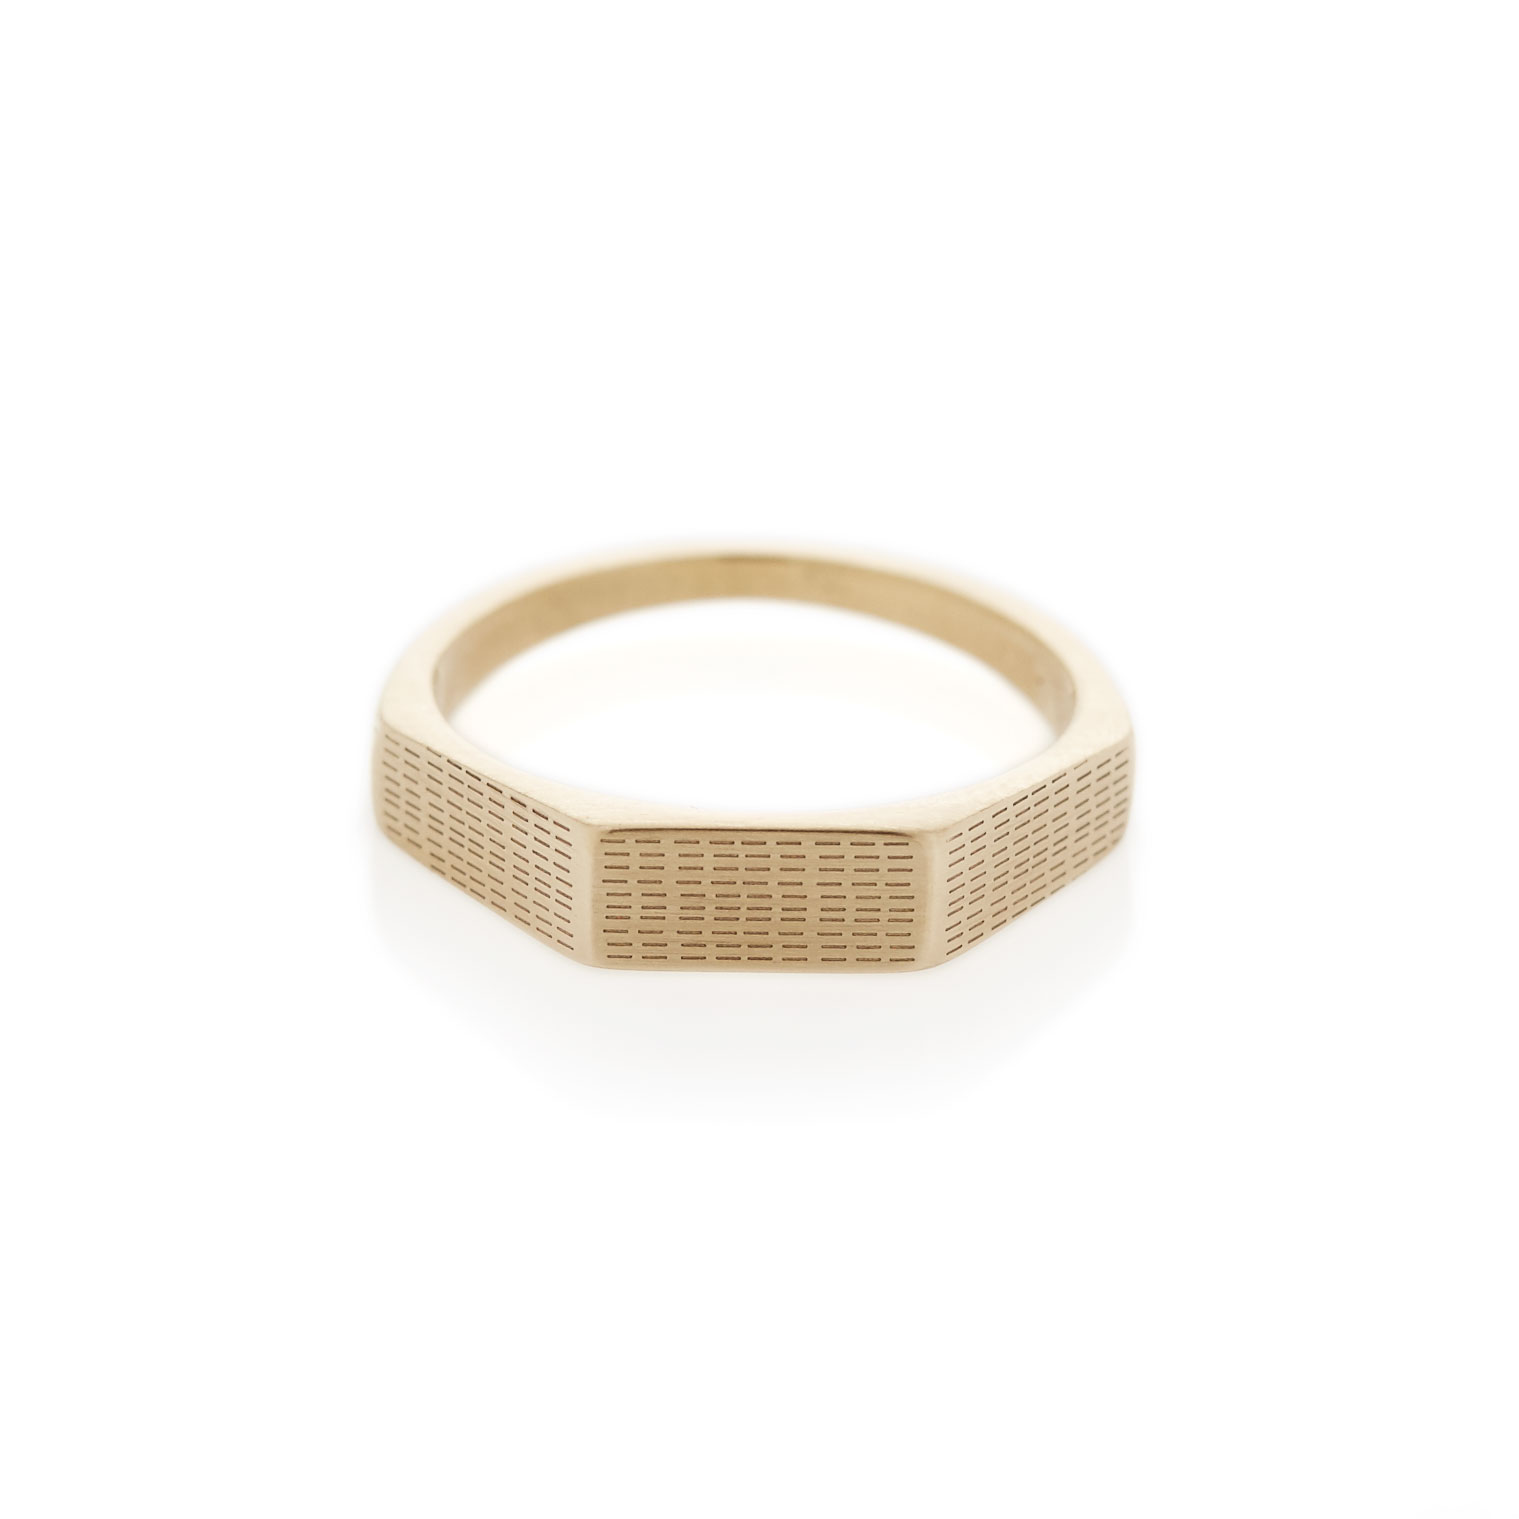 Horizontal rain three edge yellow gold signet ring